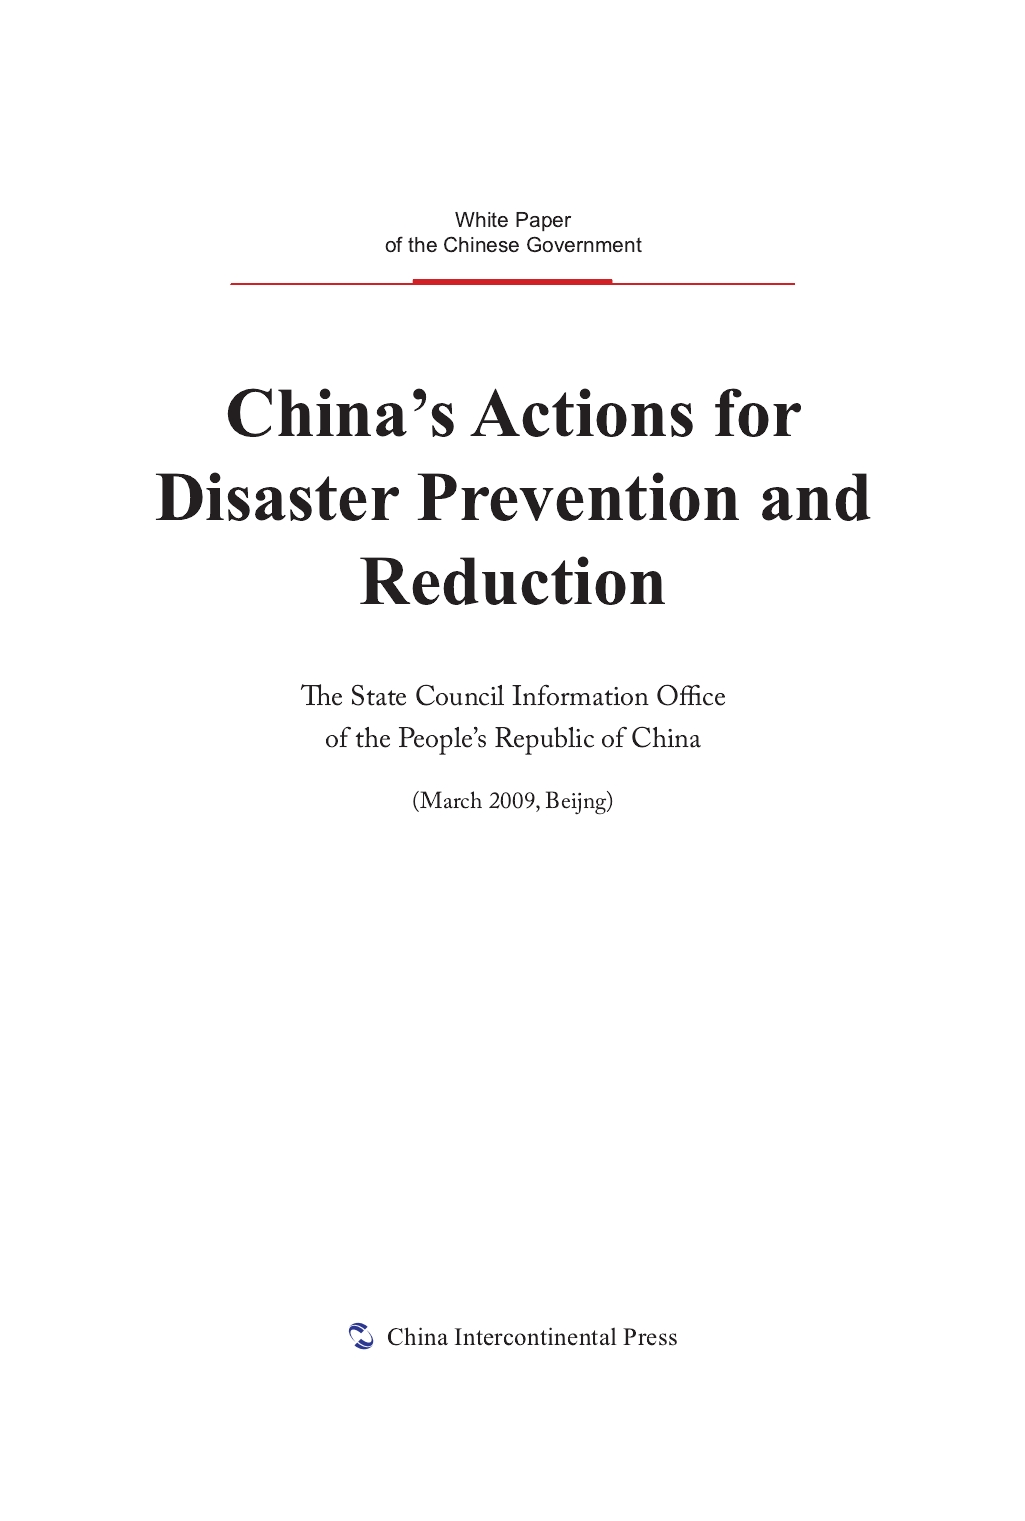 China's Actions for Disaster Prevention and Reduction